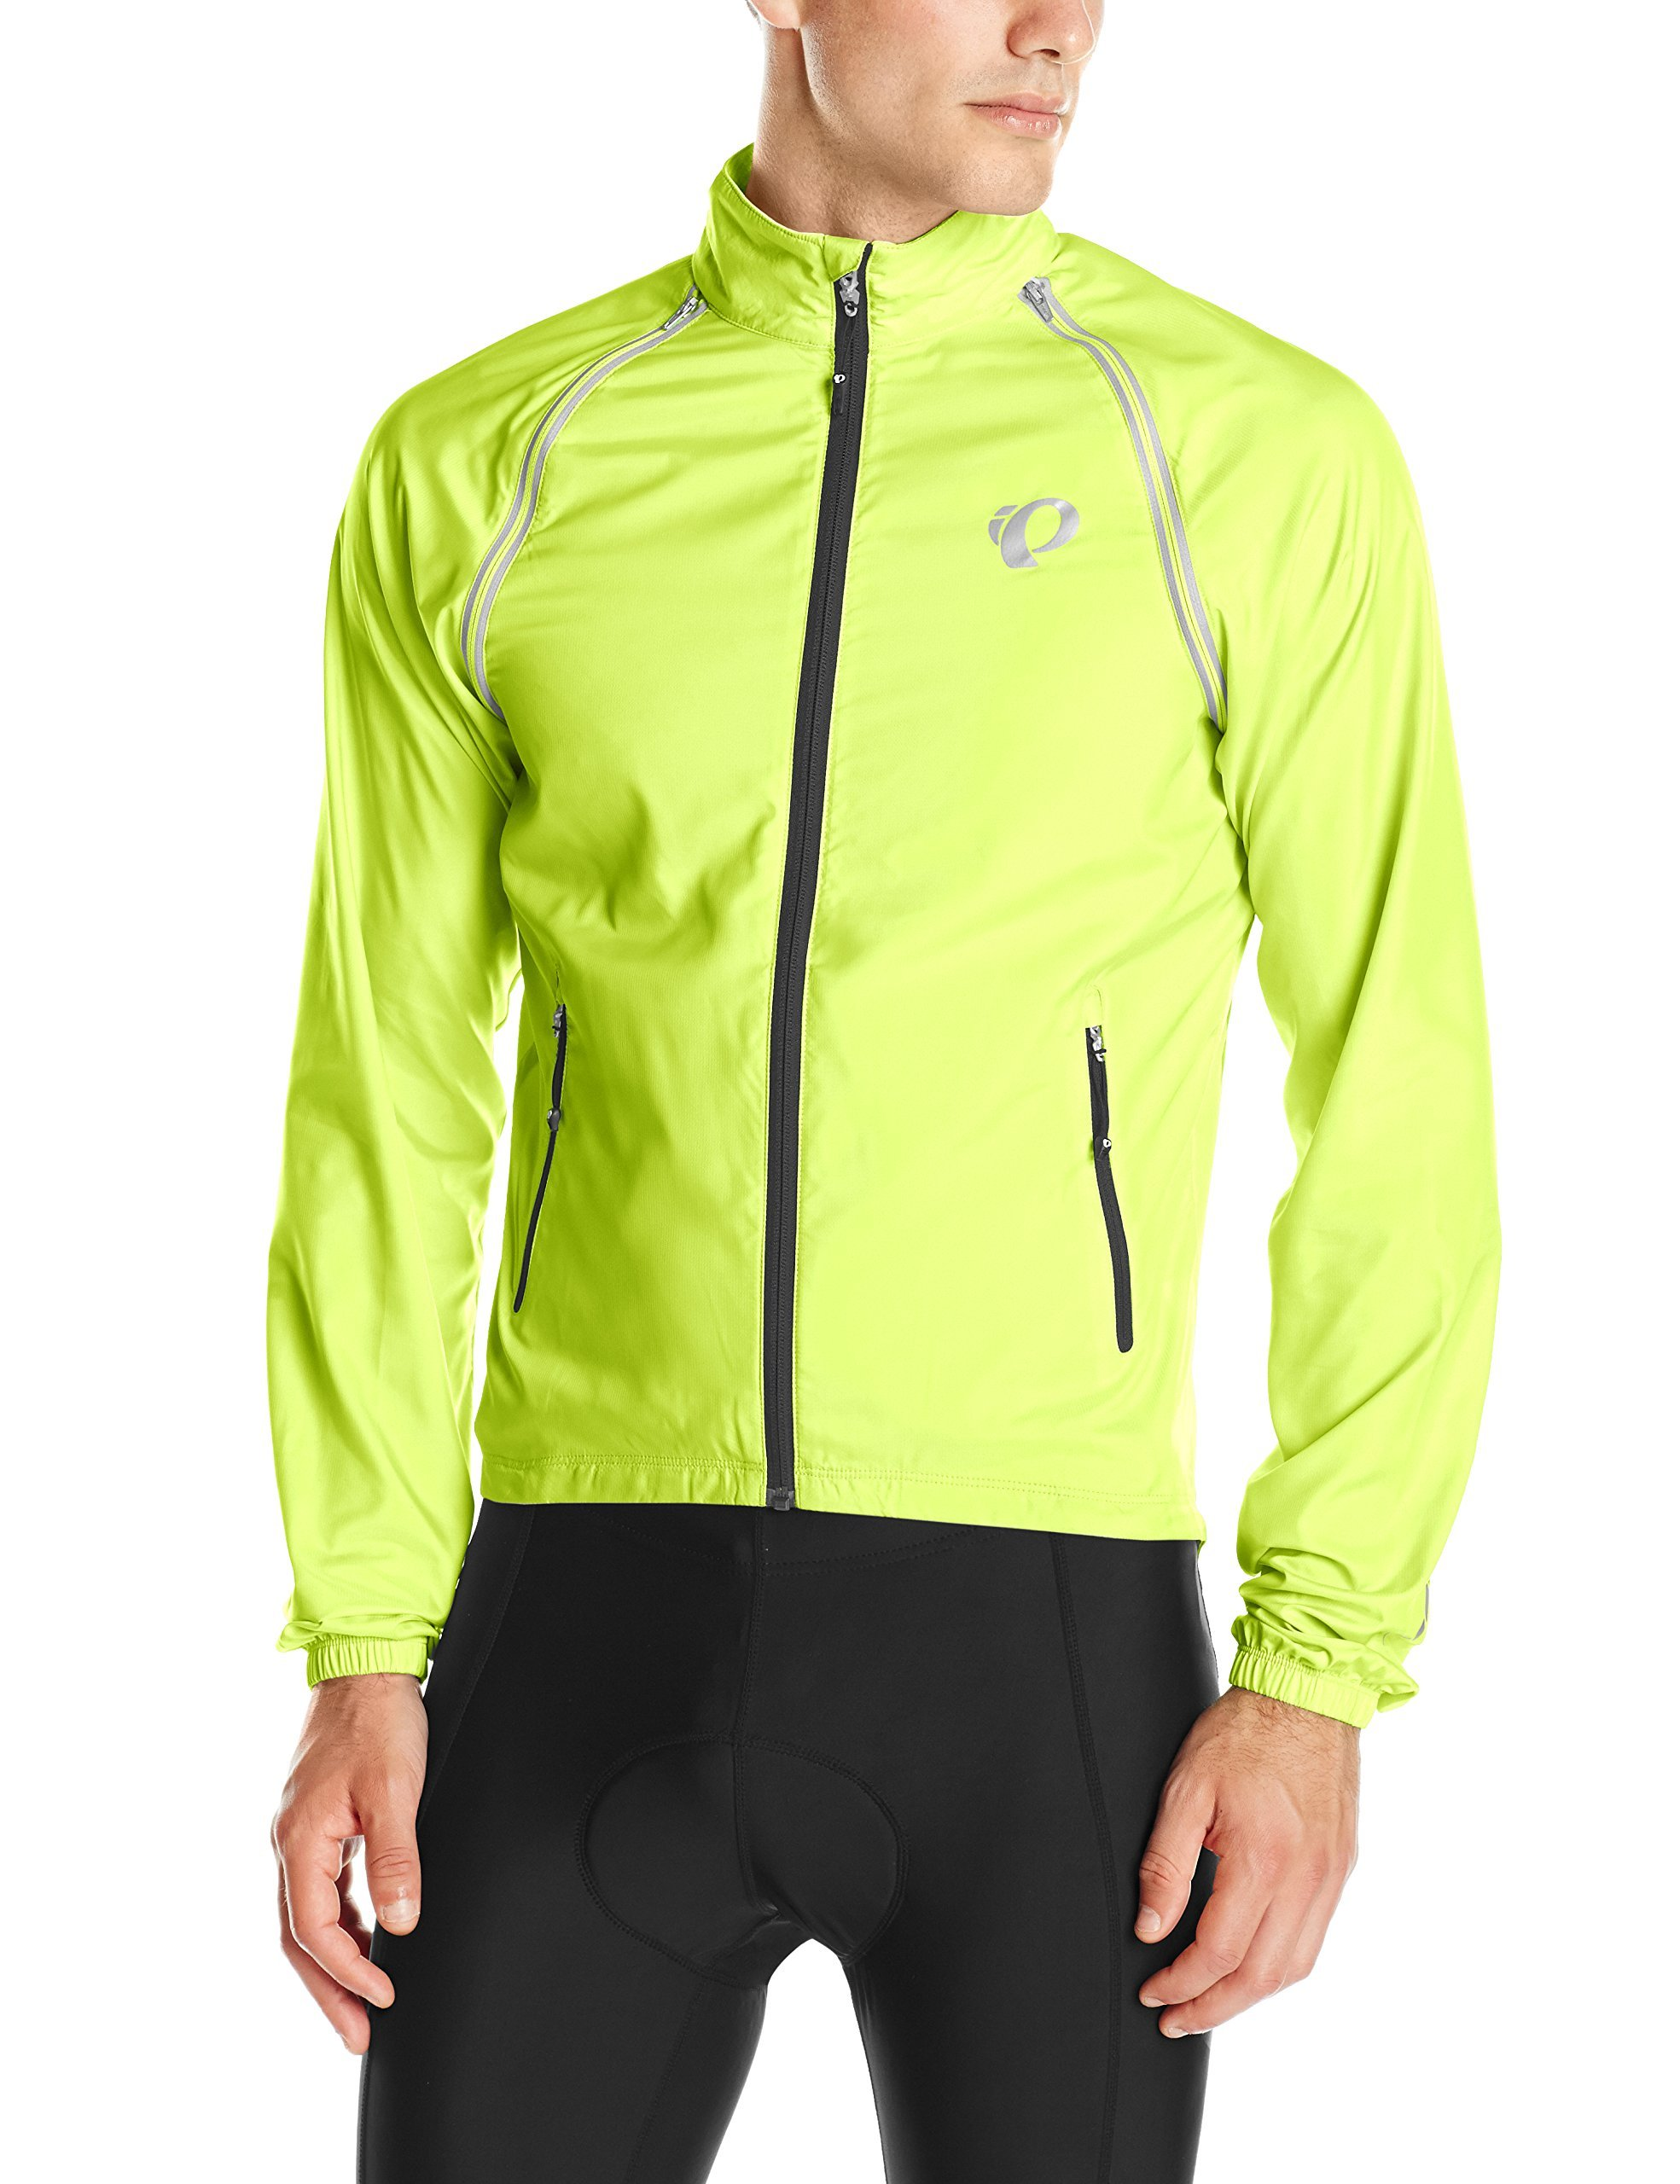 Pearl Izumi - Ride Men's Elite Barrier Convertible Jacket, Large, Screaming Yellow